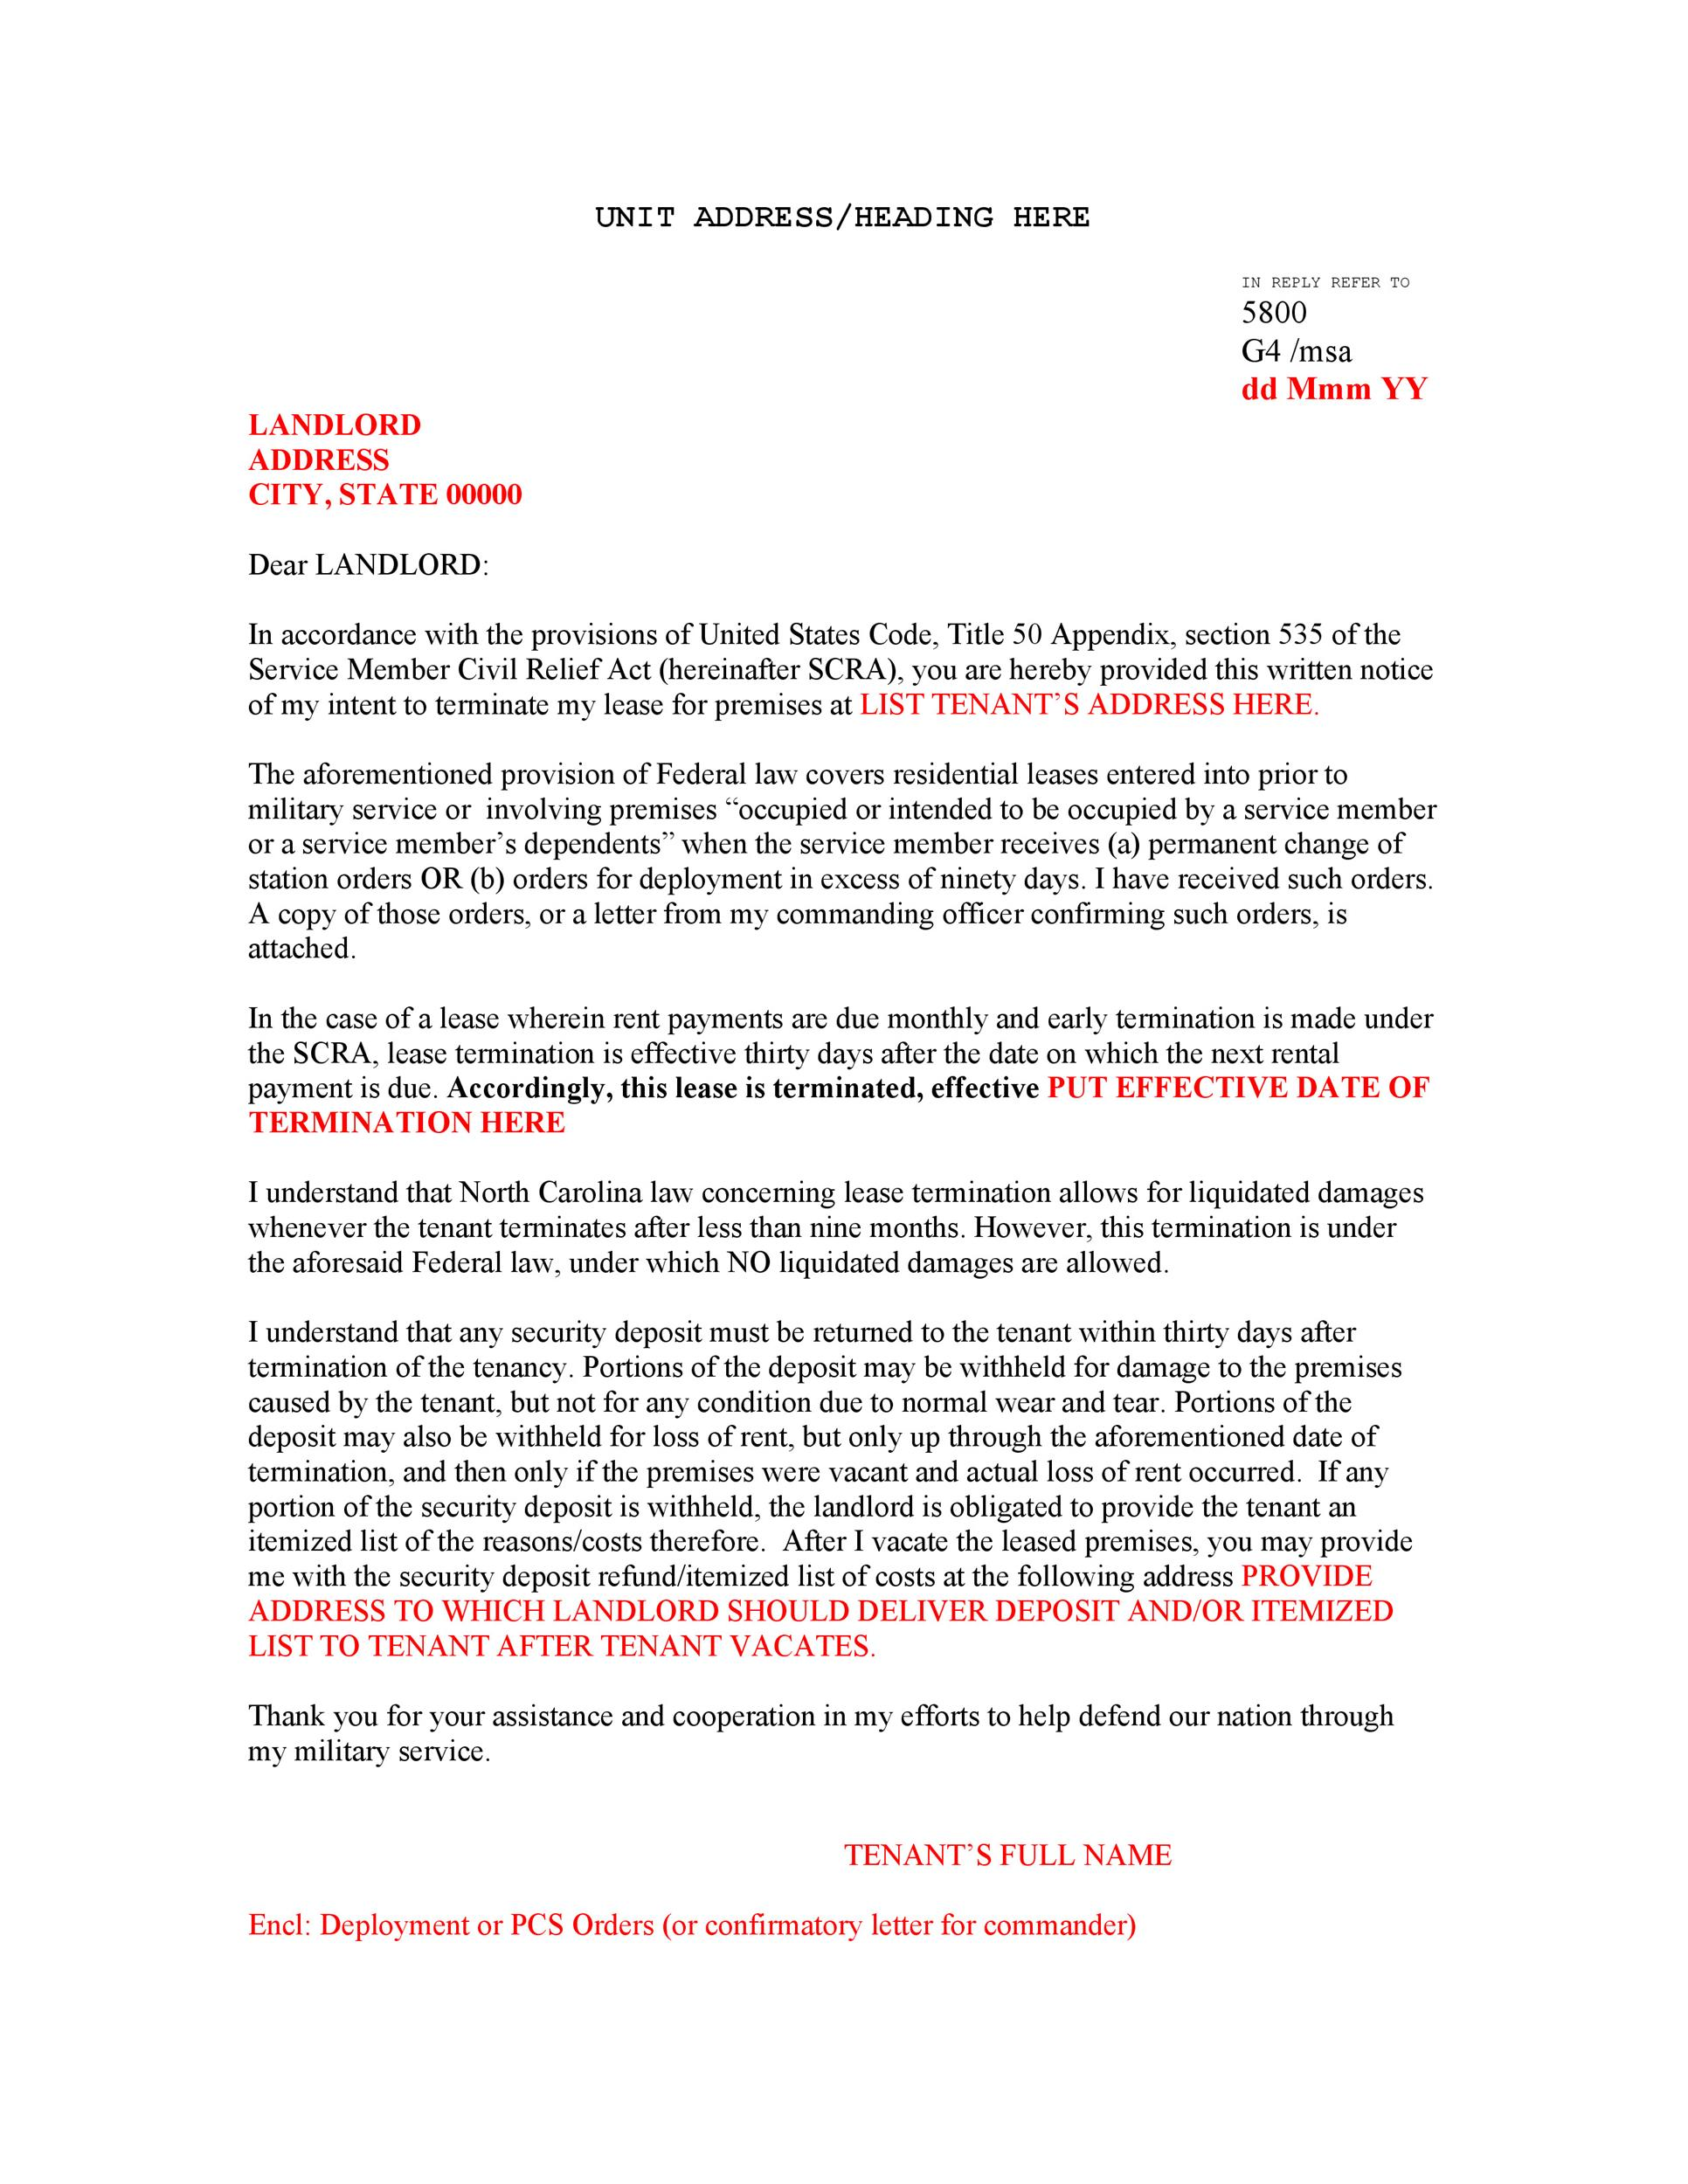 Printable Free Eviction Notice  Landlord Lease Termination Letter